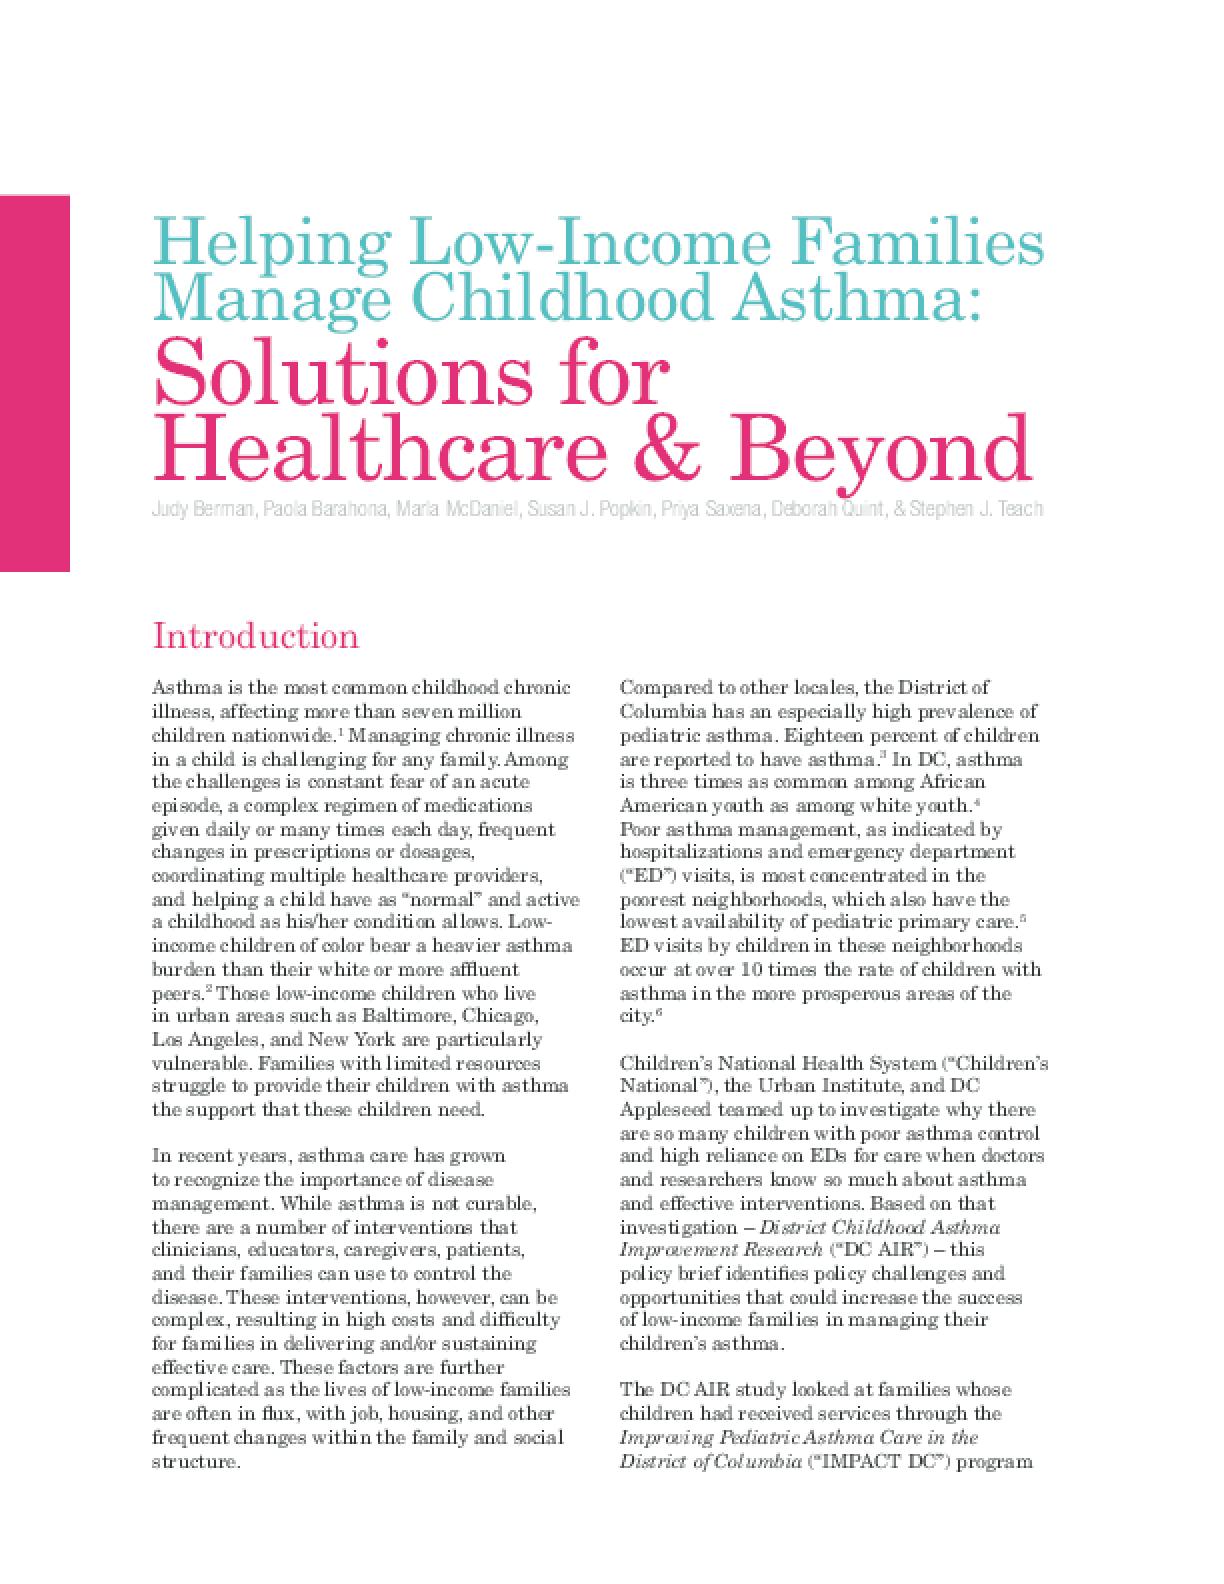 Helping Low-Income Families Manage Childhood Asthma: Solutions for Healthcare & Beyond